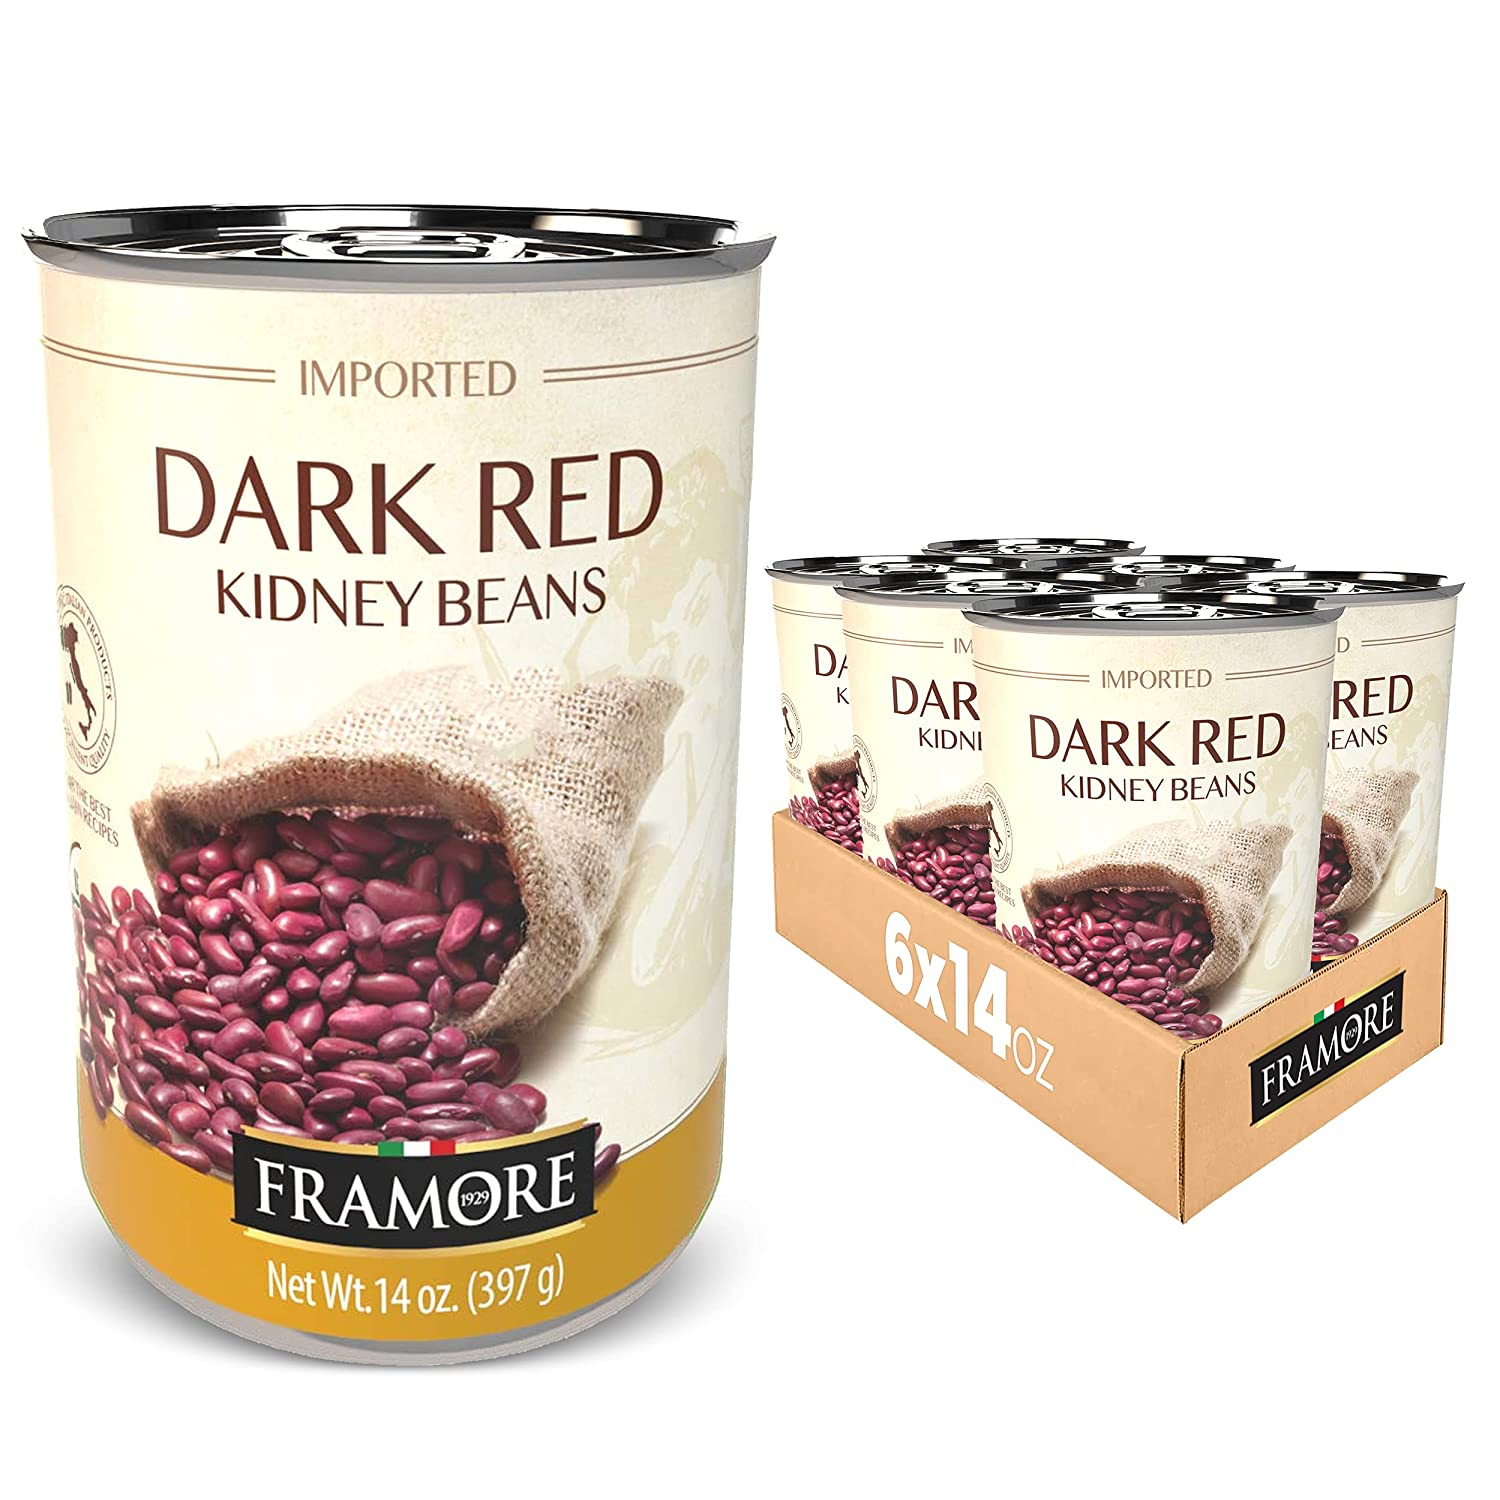 FRAMORE 2021 Canned Dark Red Kidney Max 83% OFF Imported Gourmet Authent Beans